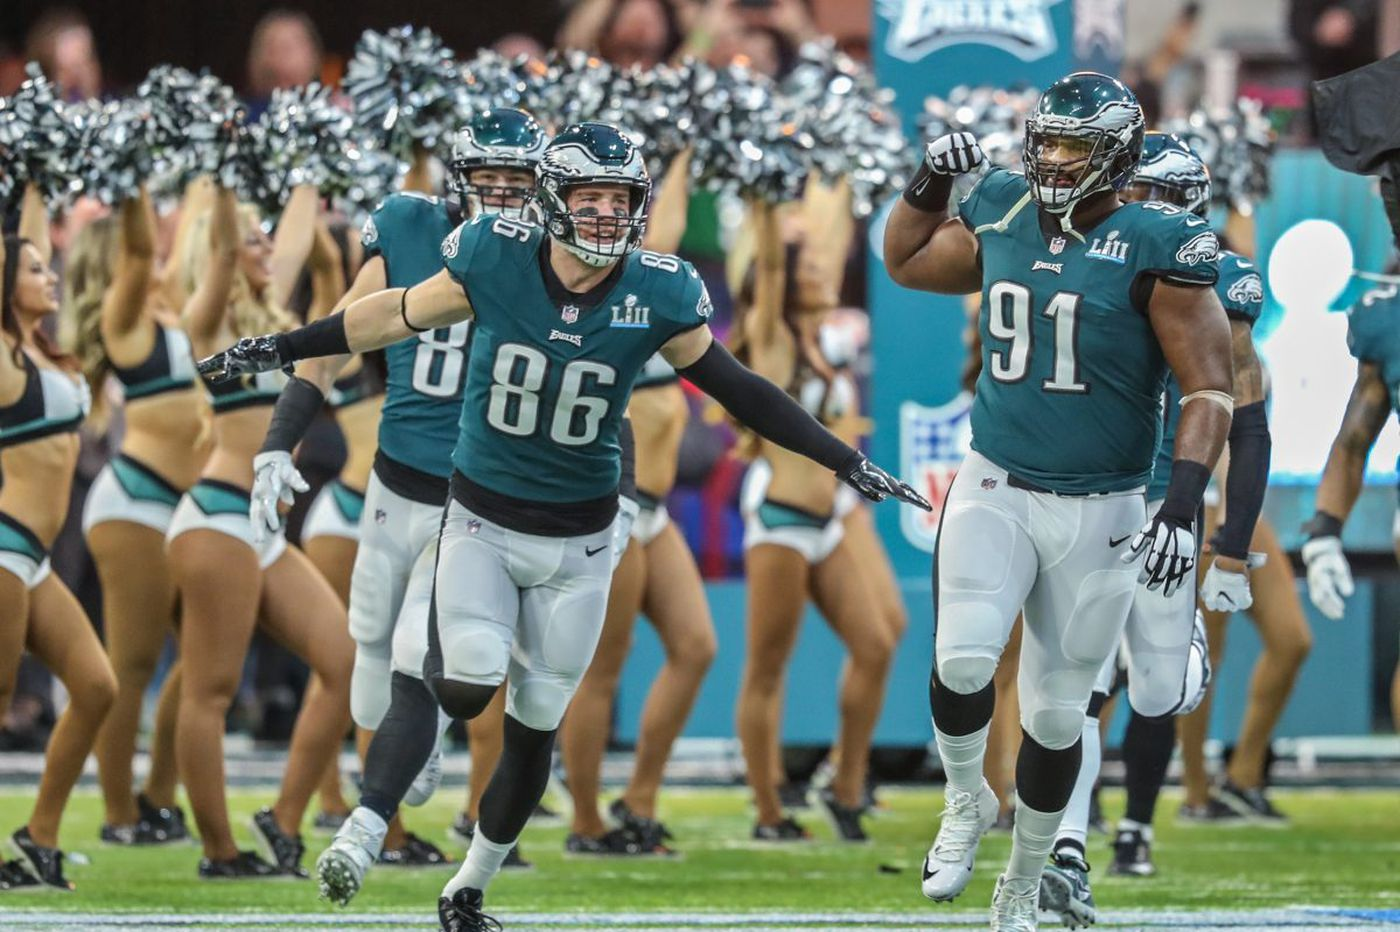 Zach Ertz contract restructure gives Eagles added salary cap space